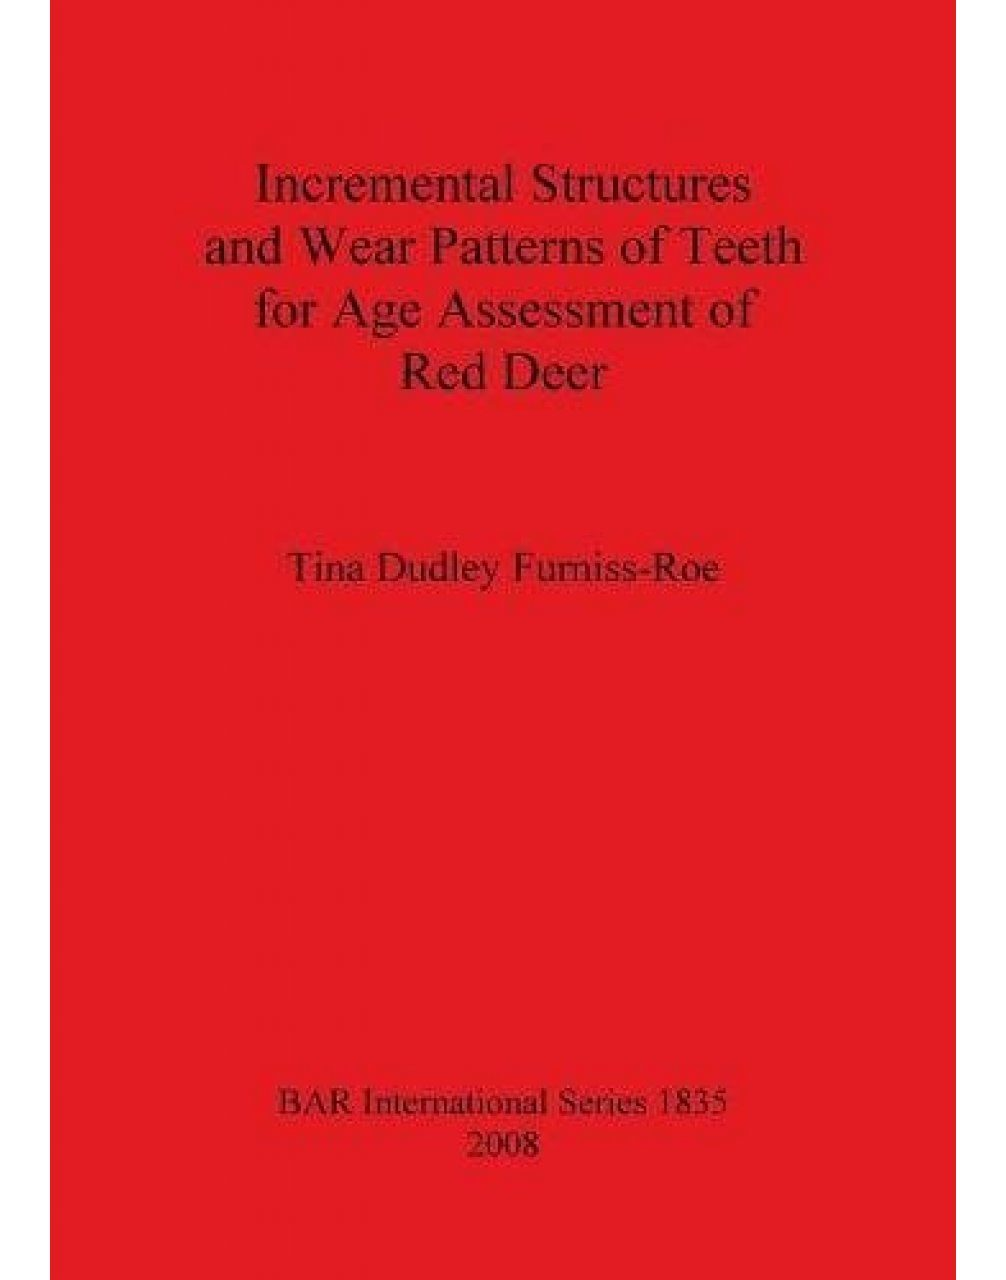 Incremental Structures and Wear Patterns of Teeth for Age Assessment of Red Deer